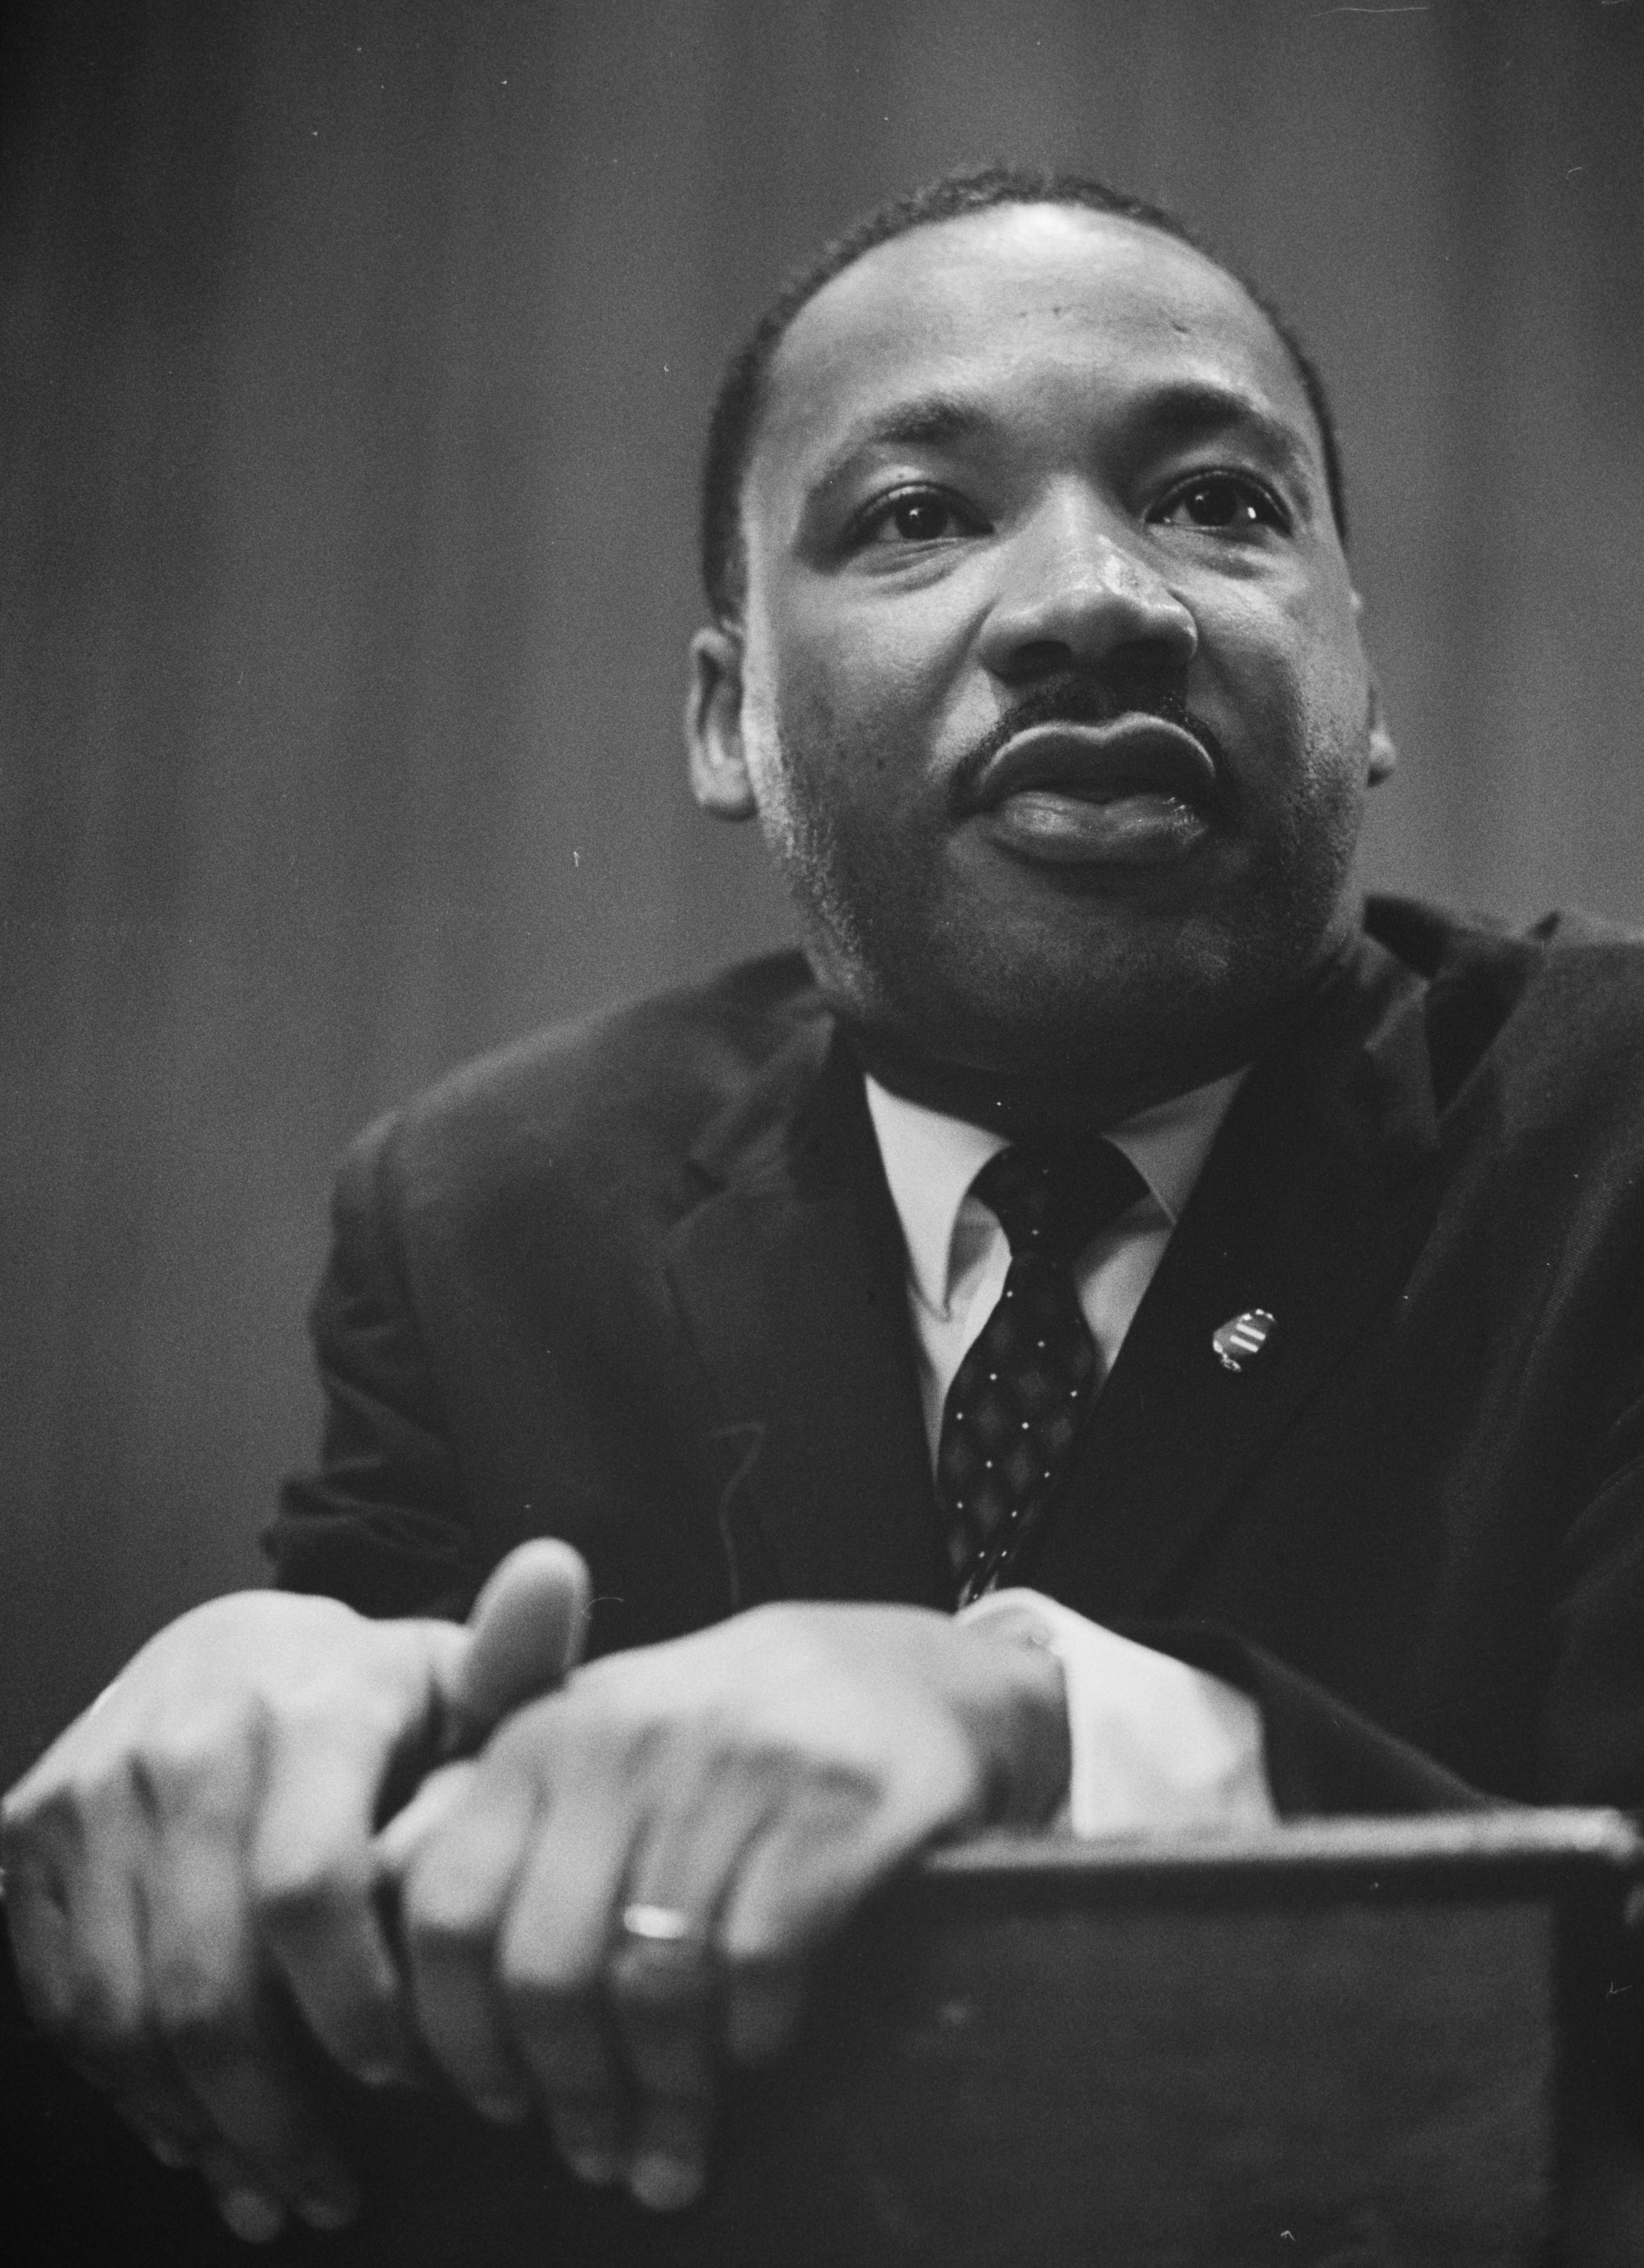 Description Martin-Luther-King-1964-leaning-on-a-lectern.jpg